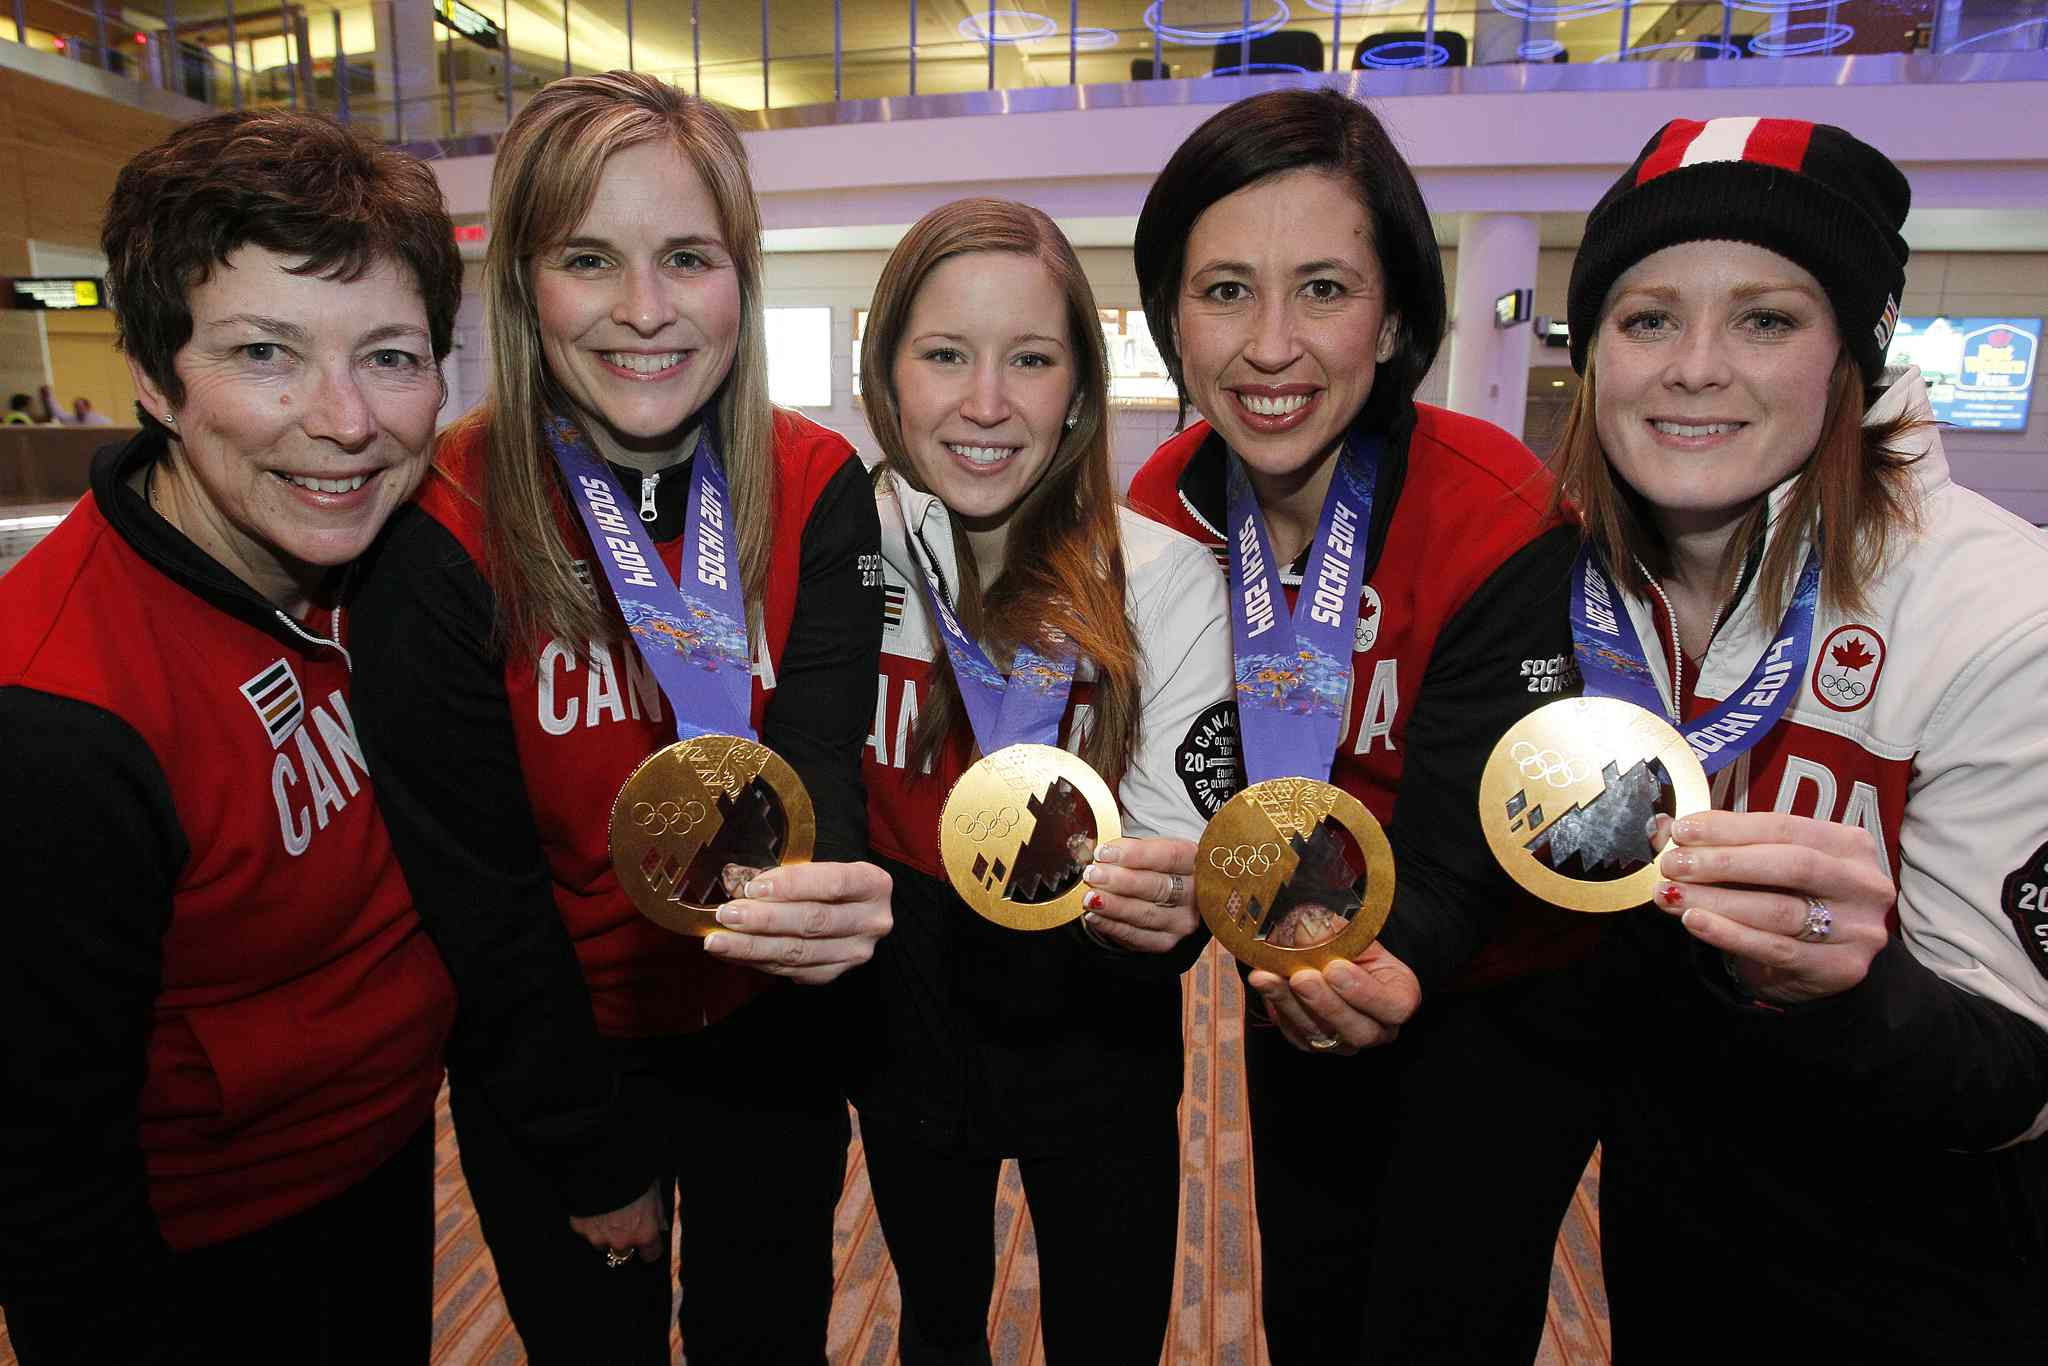 The Jones rink show off their well-earned hardware at the Winnipeg airport last night.